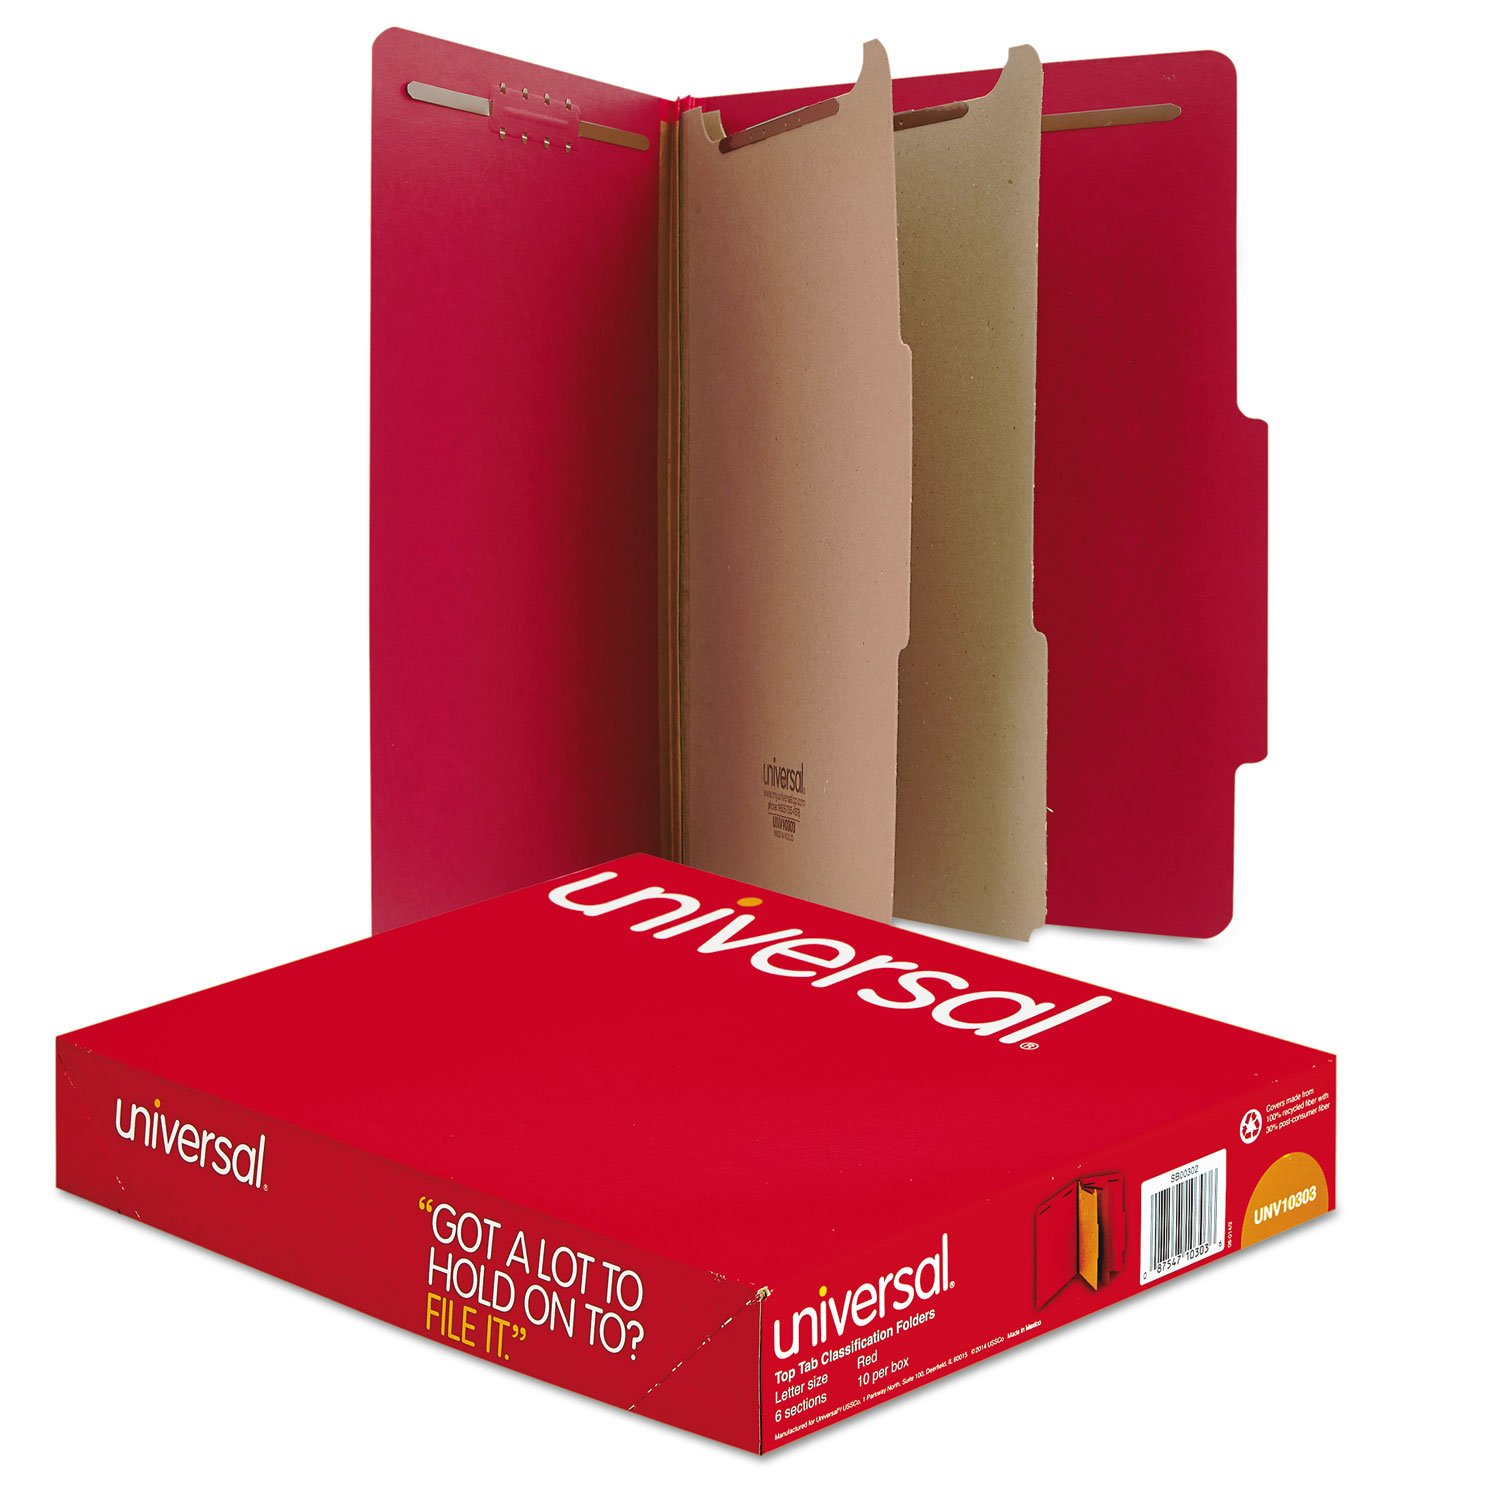 Universal - Pressboard Classification Folders, Letter, 6-Section, Ruby Red, 10/bx by Universal